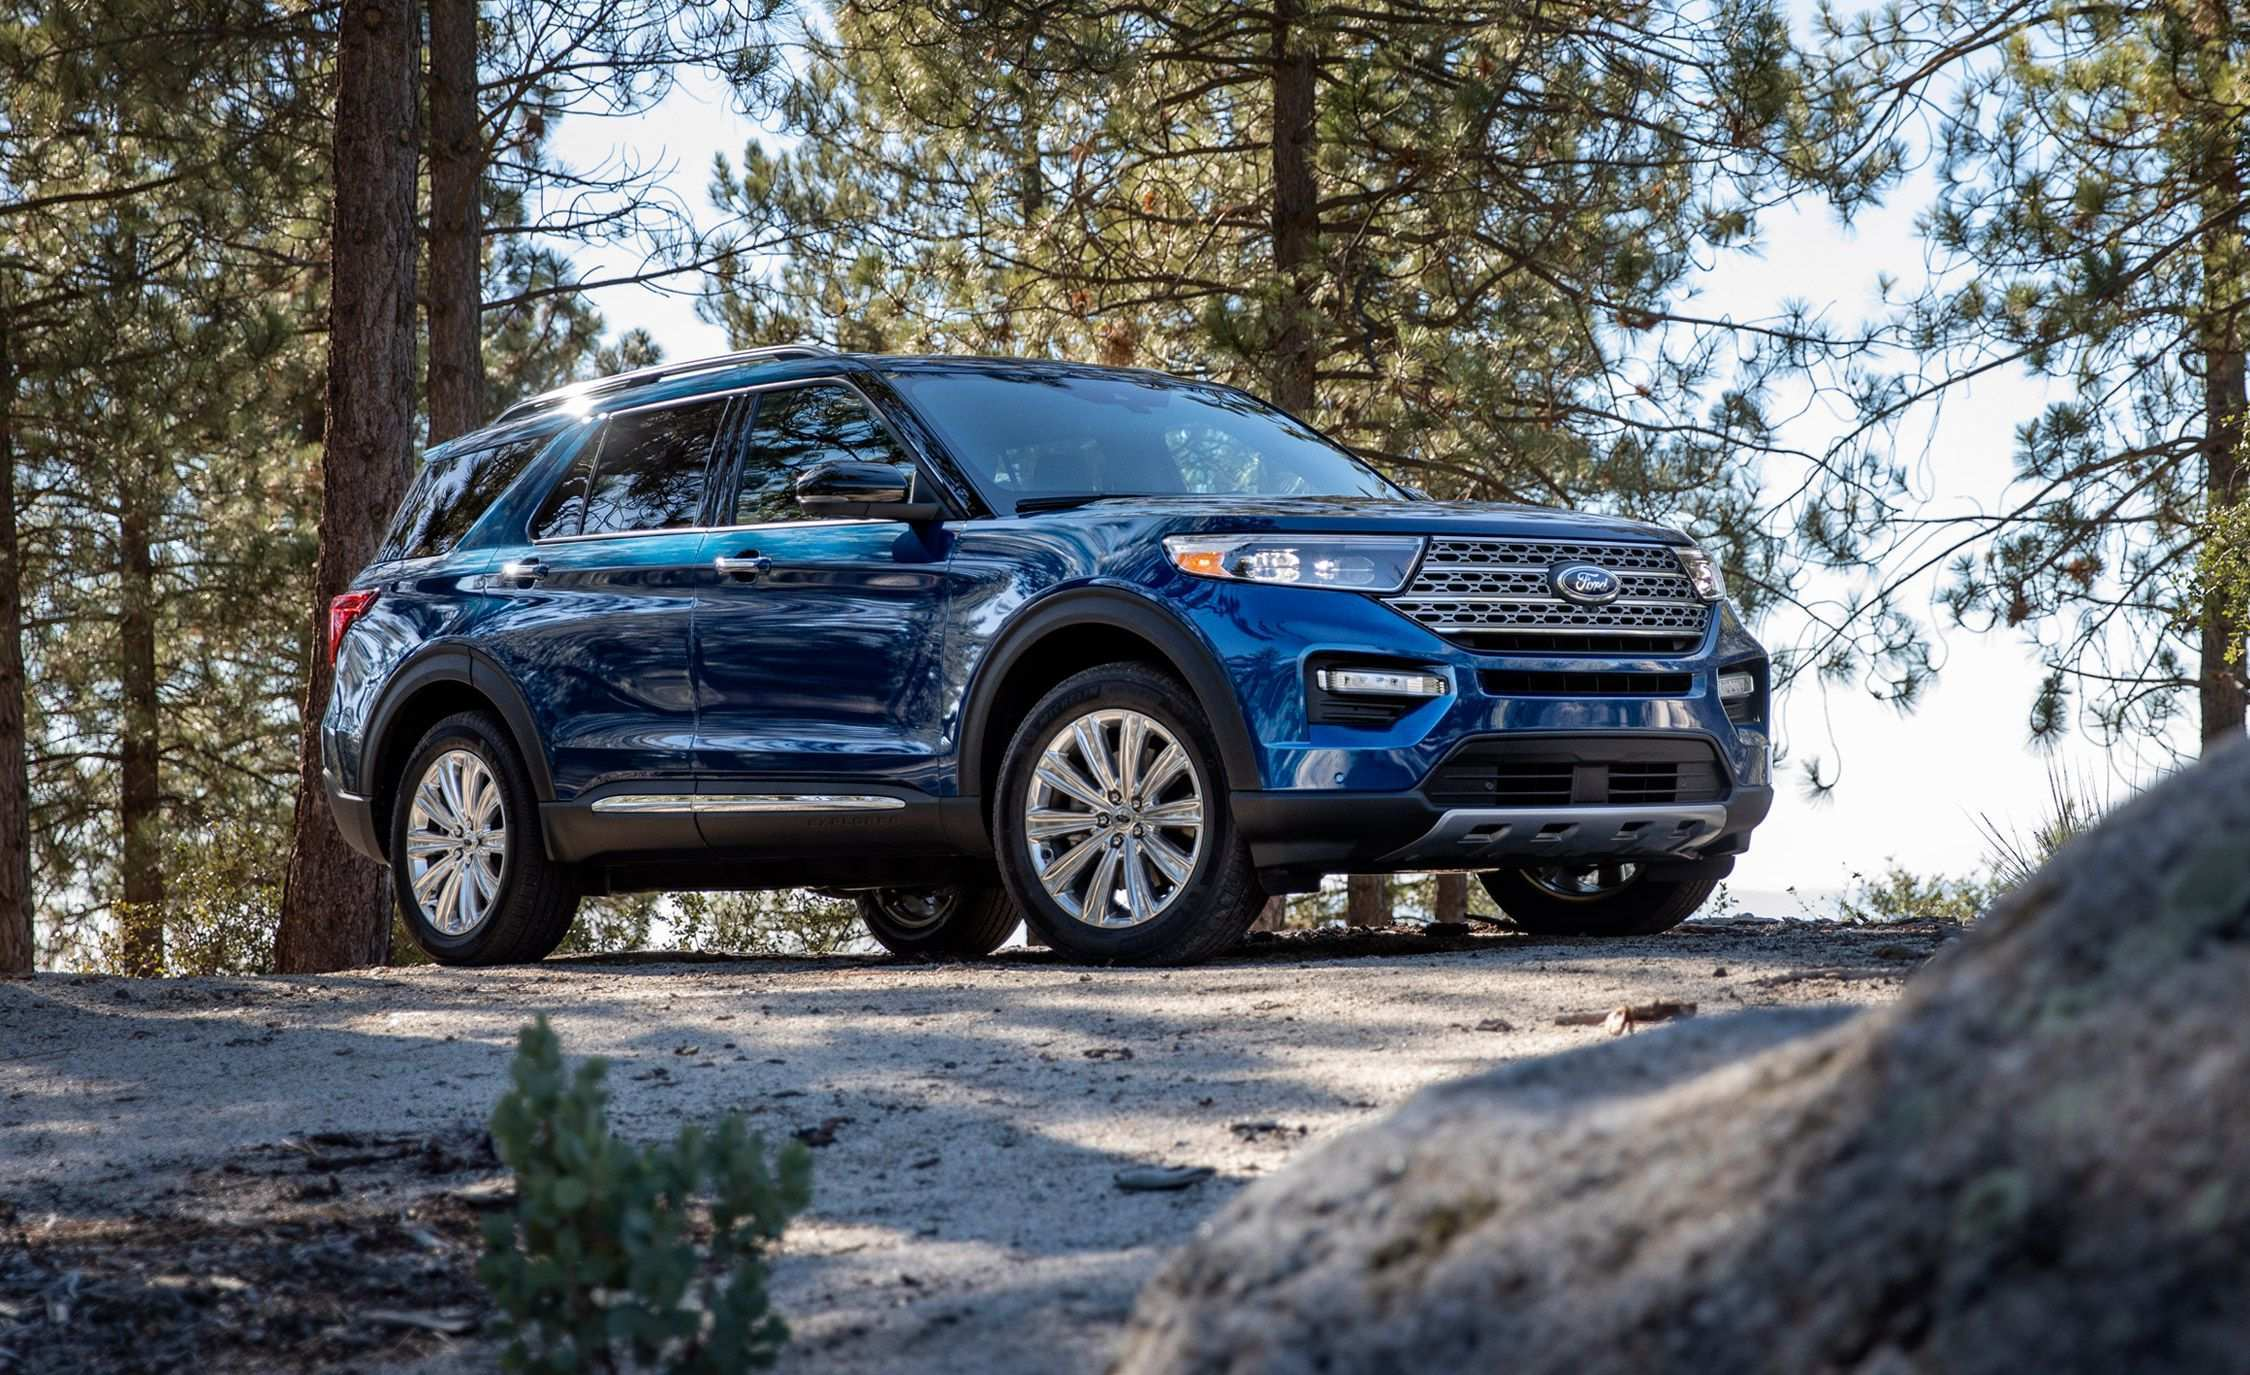 99 Best Review 2020 Ford Explorer Photos for 2020 Ford Explorer